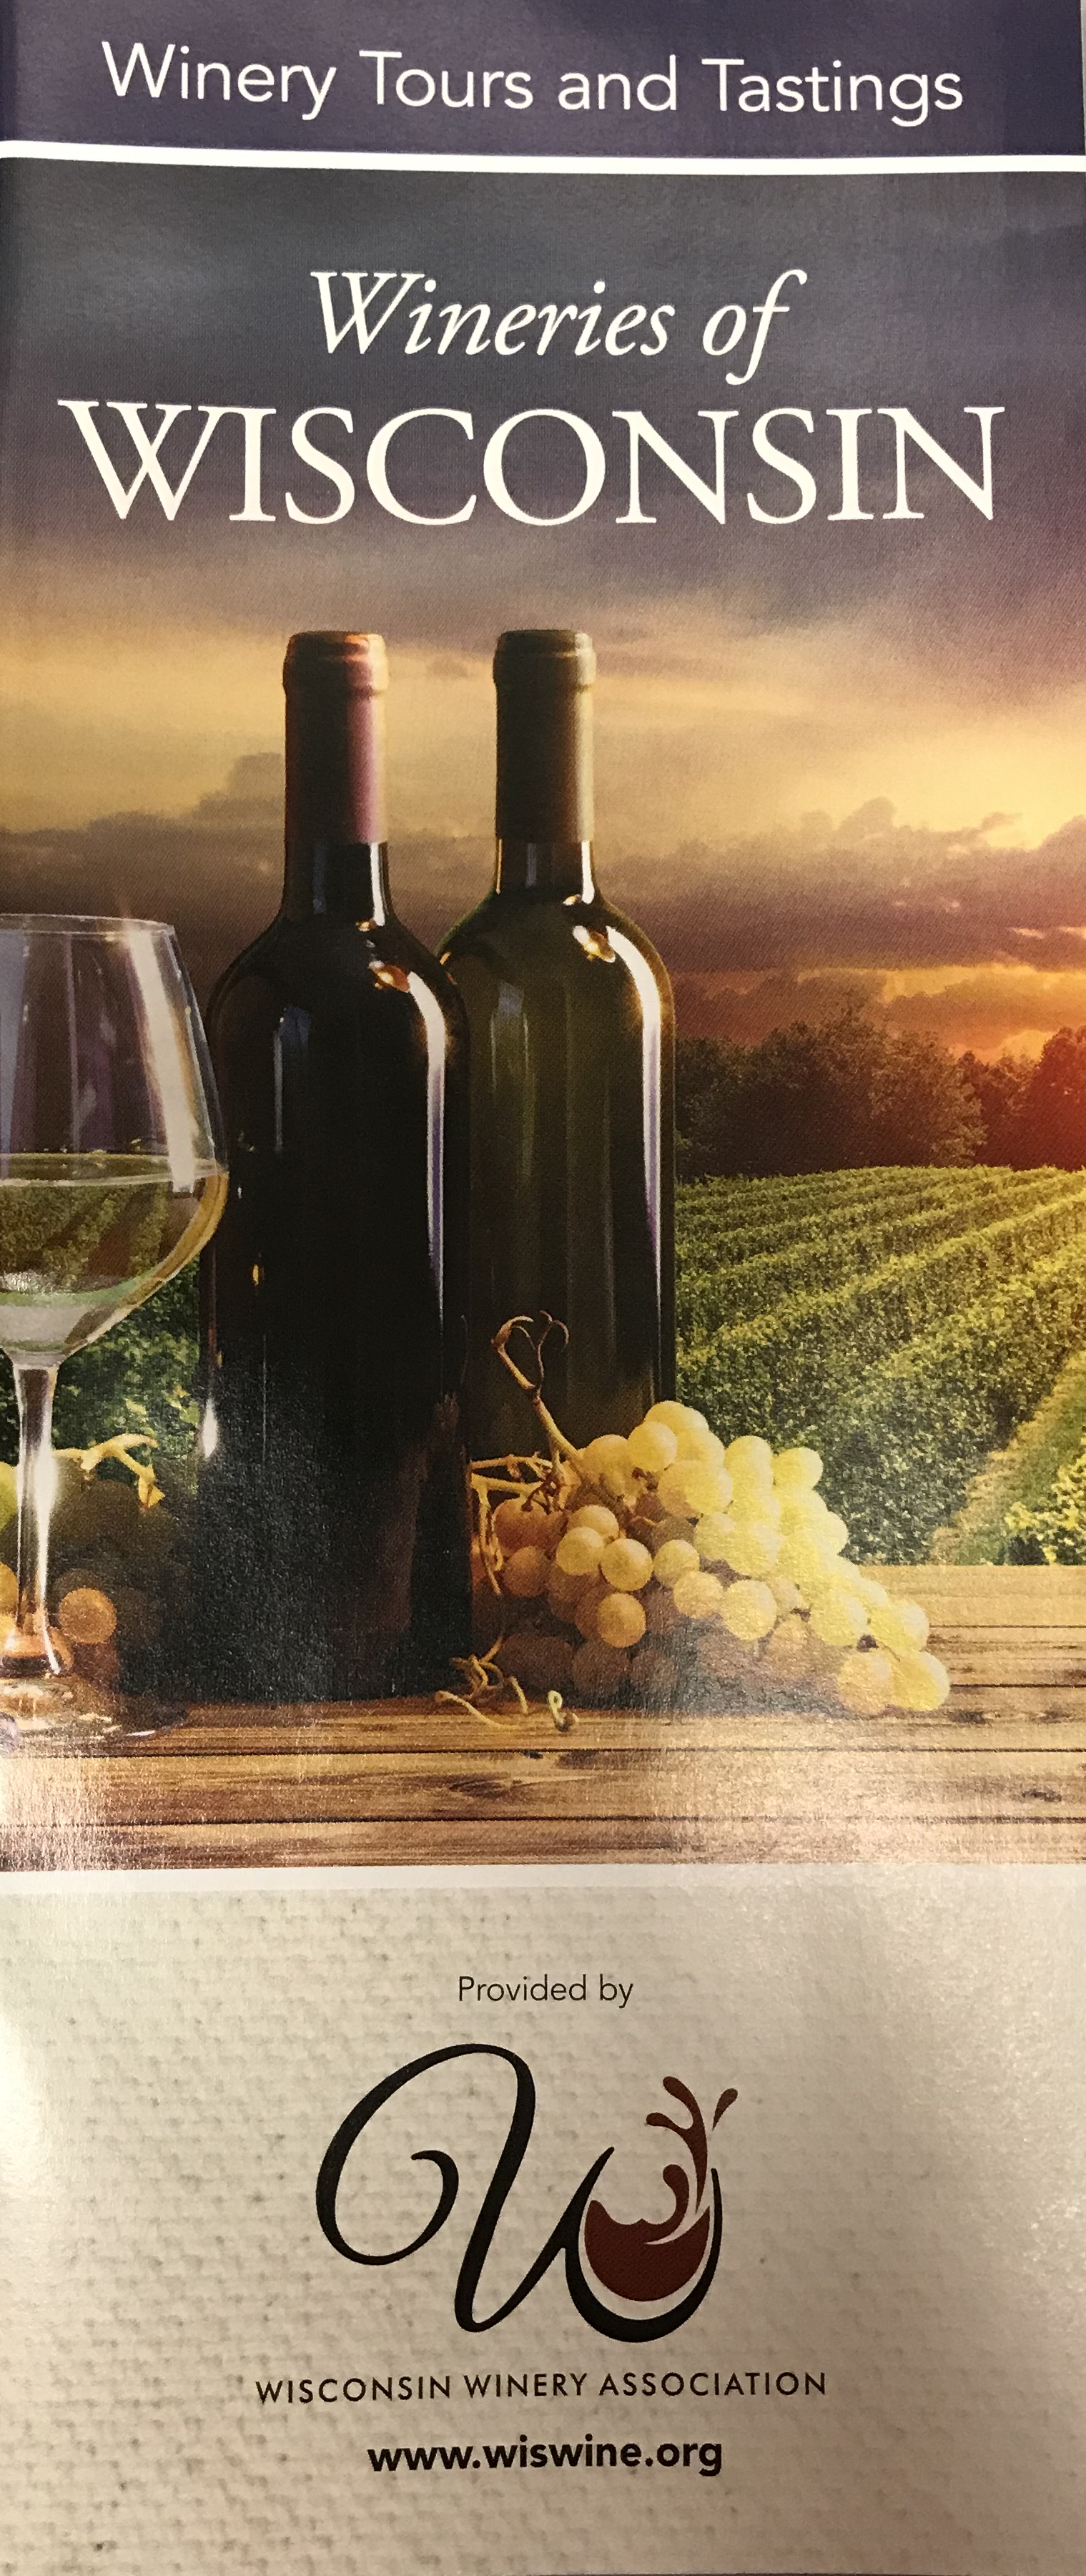 Wineries of Wisconsin 2019